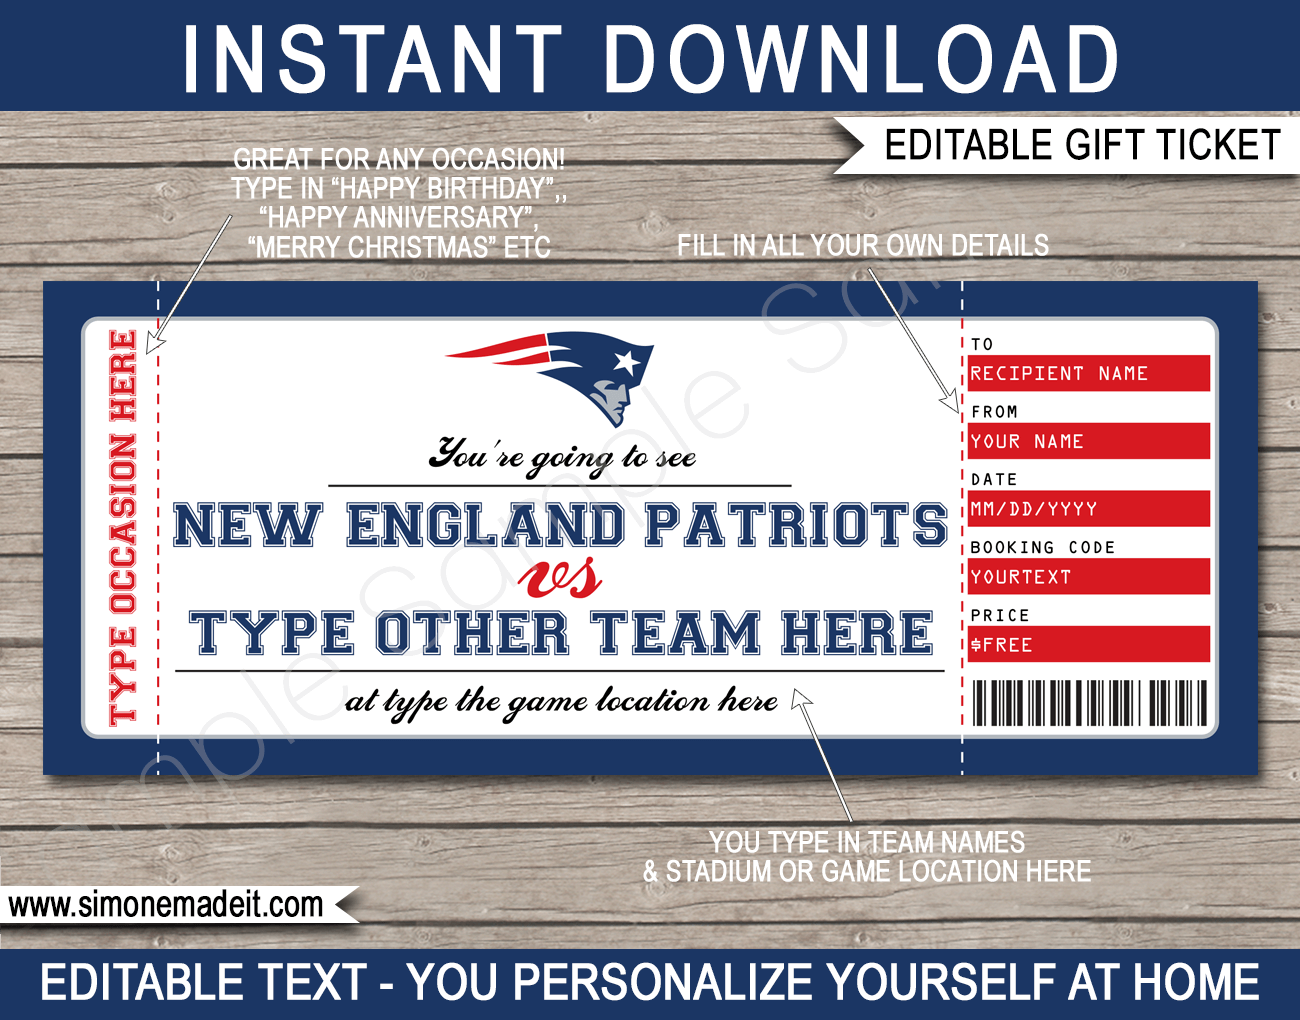 New England Patriots Gift Vouchers In 2020 New England Patriots Game England Patriots New England Patriots